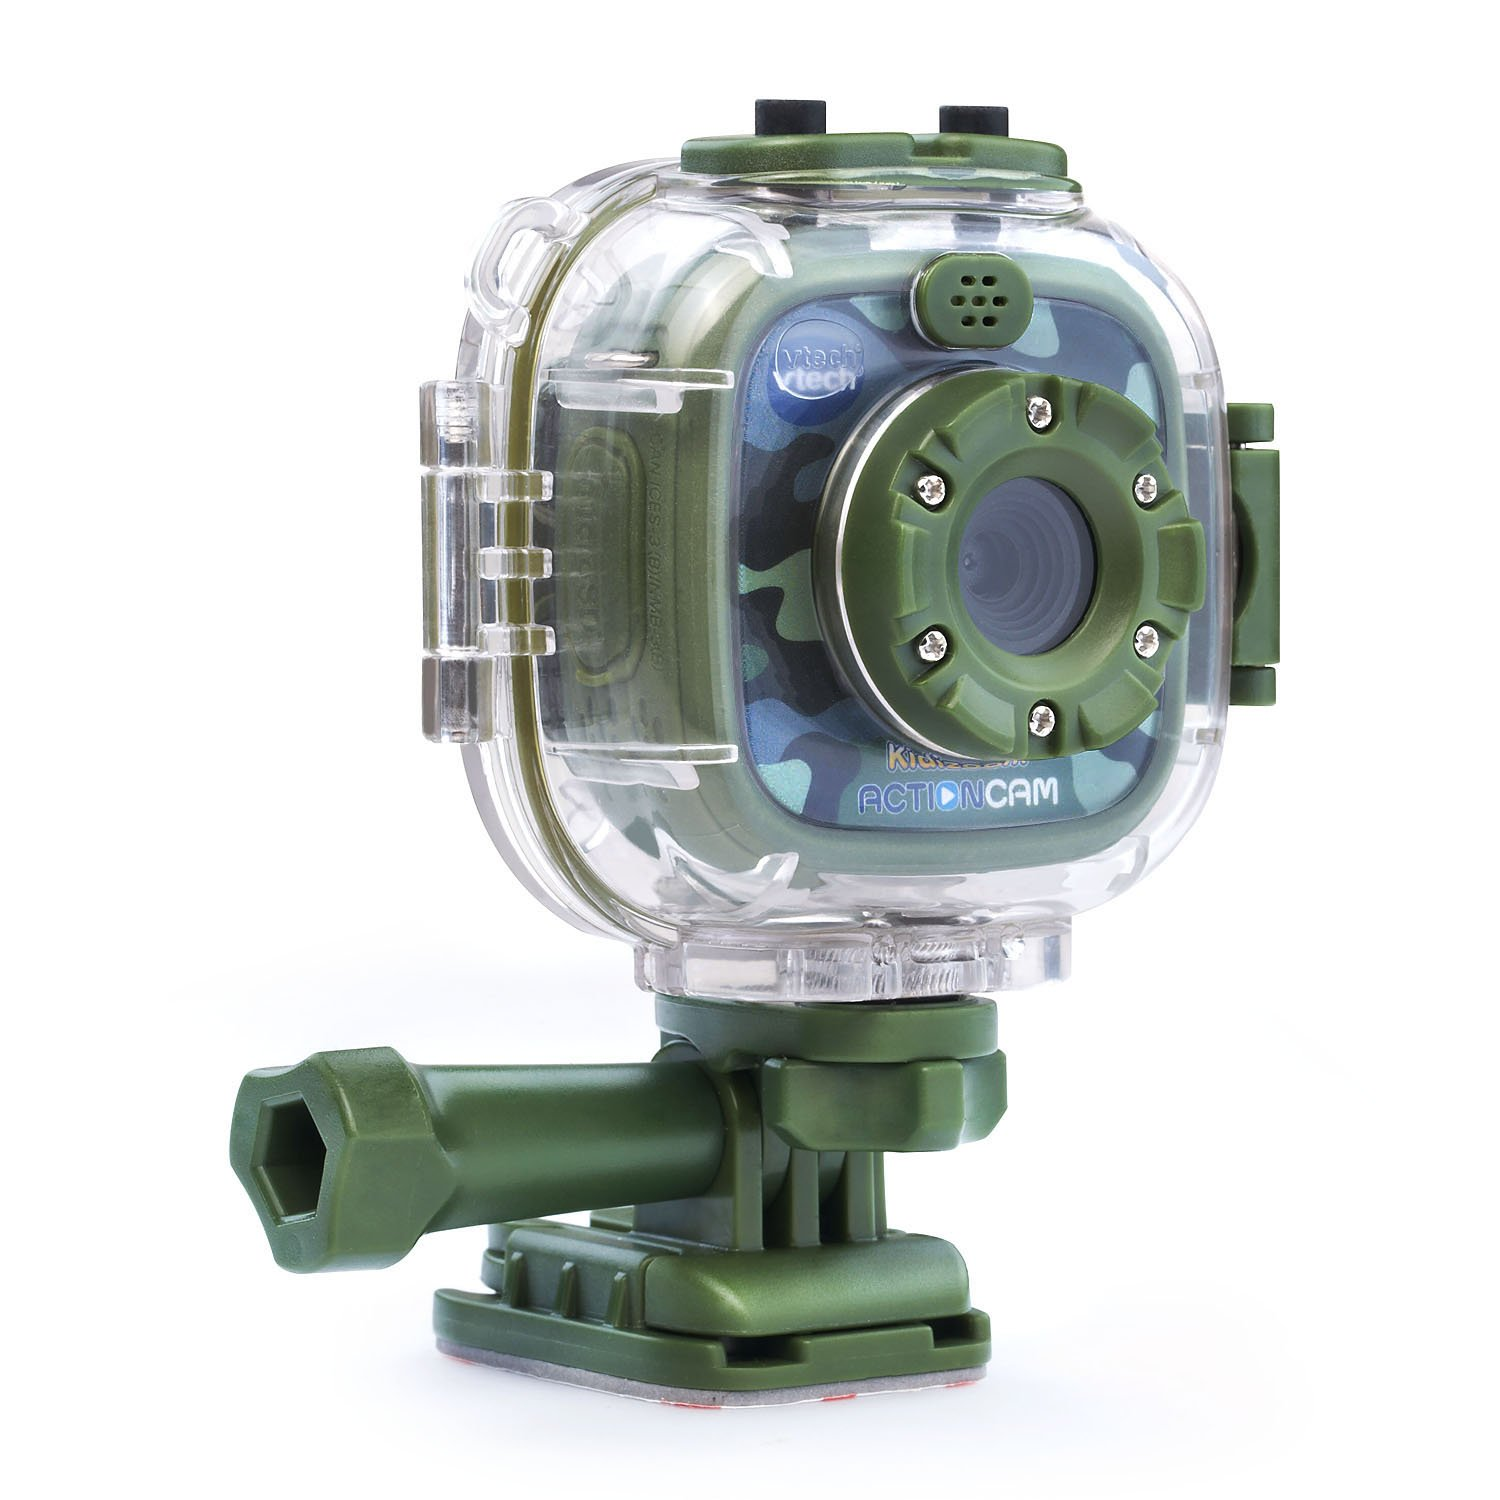 VTech Kidizoom Action Cam Amazon Exclusive, Camouflage by VTech